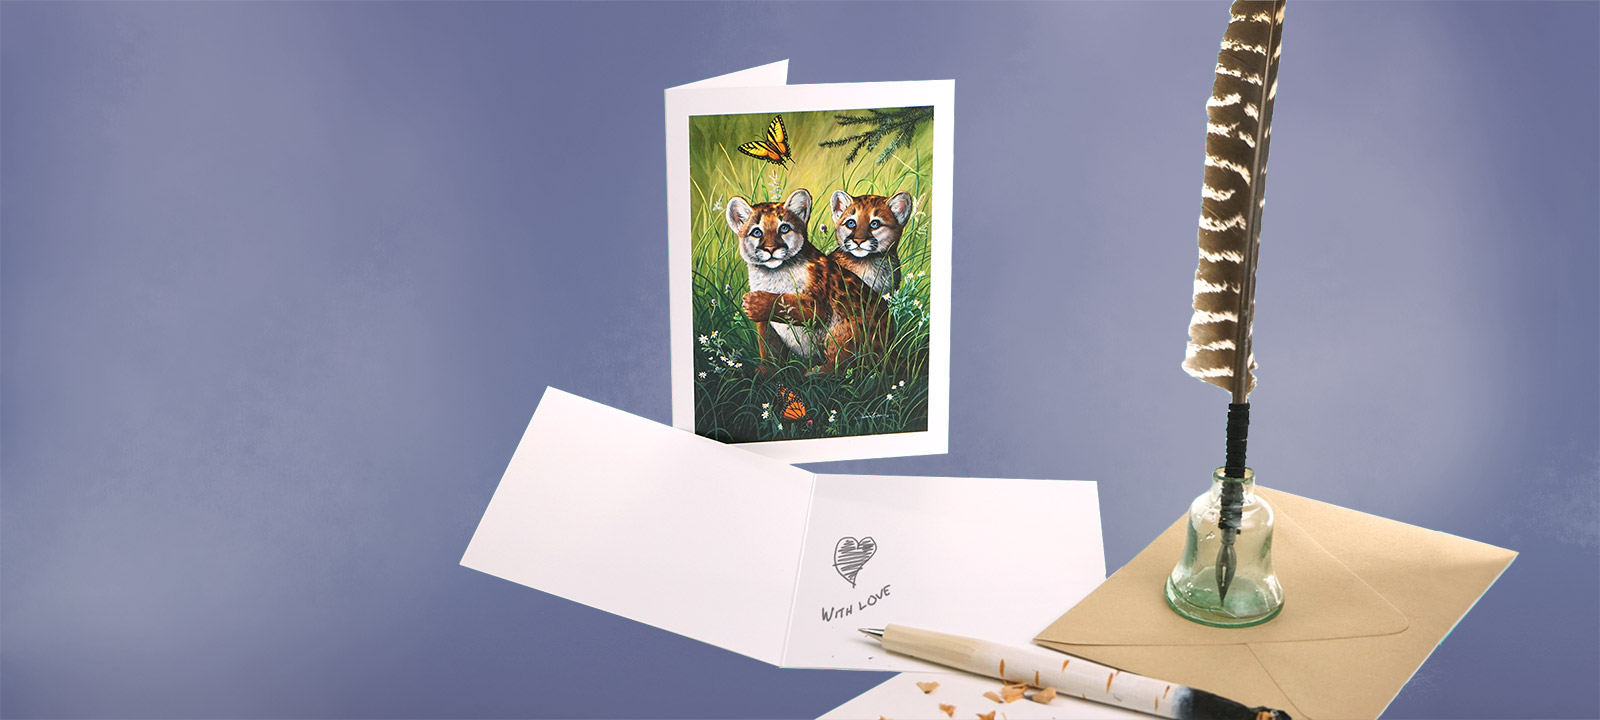 Cougar Cubs Greeting Card. Open card signed with Love and quill pen.